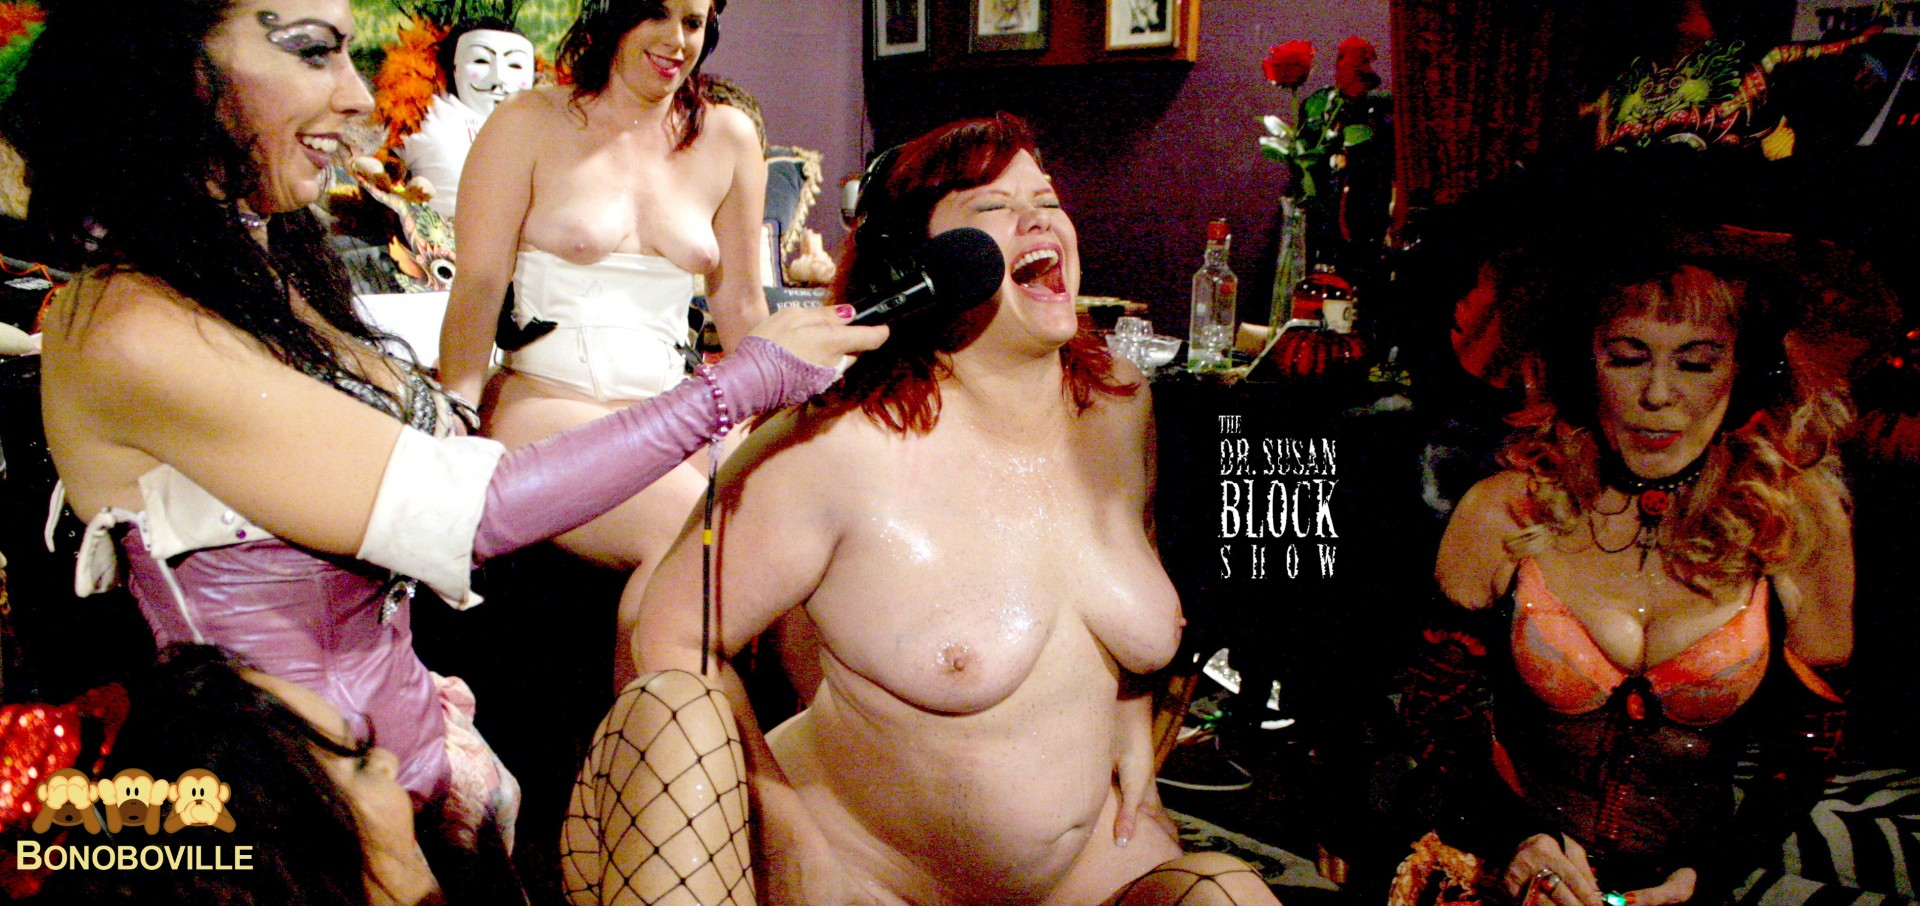 Marcy Diamond rides the Sybian on DrSuzy.Tv. Photo: Ono Bo